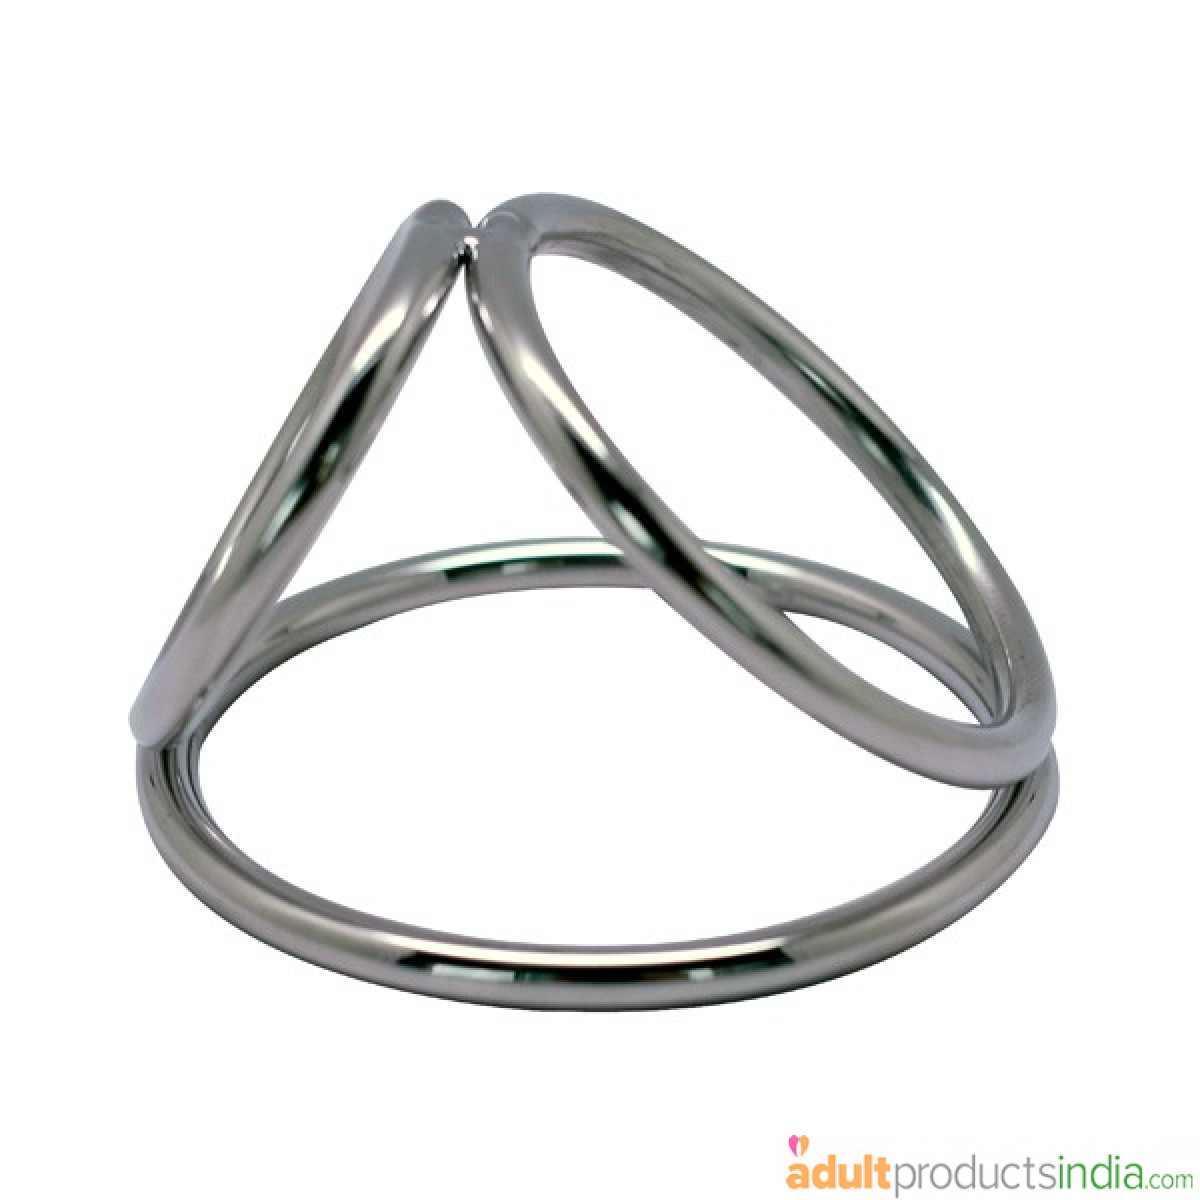 Triple Steel Cock Ring - Small Size